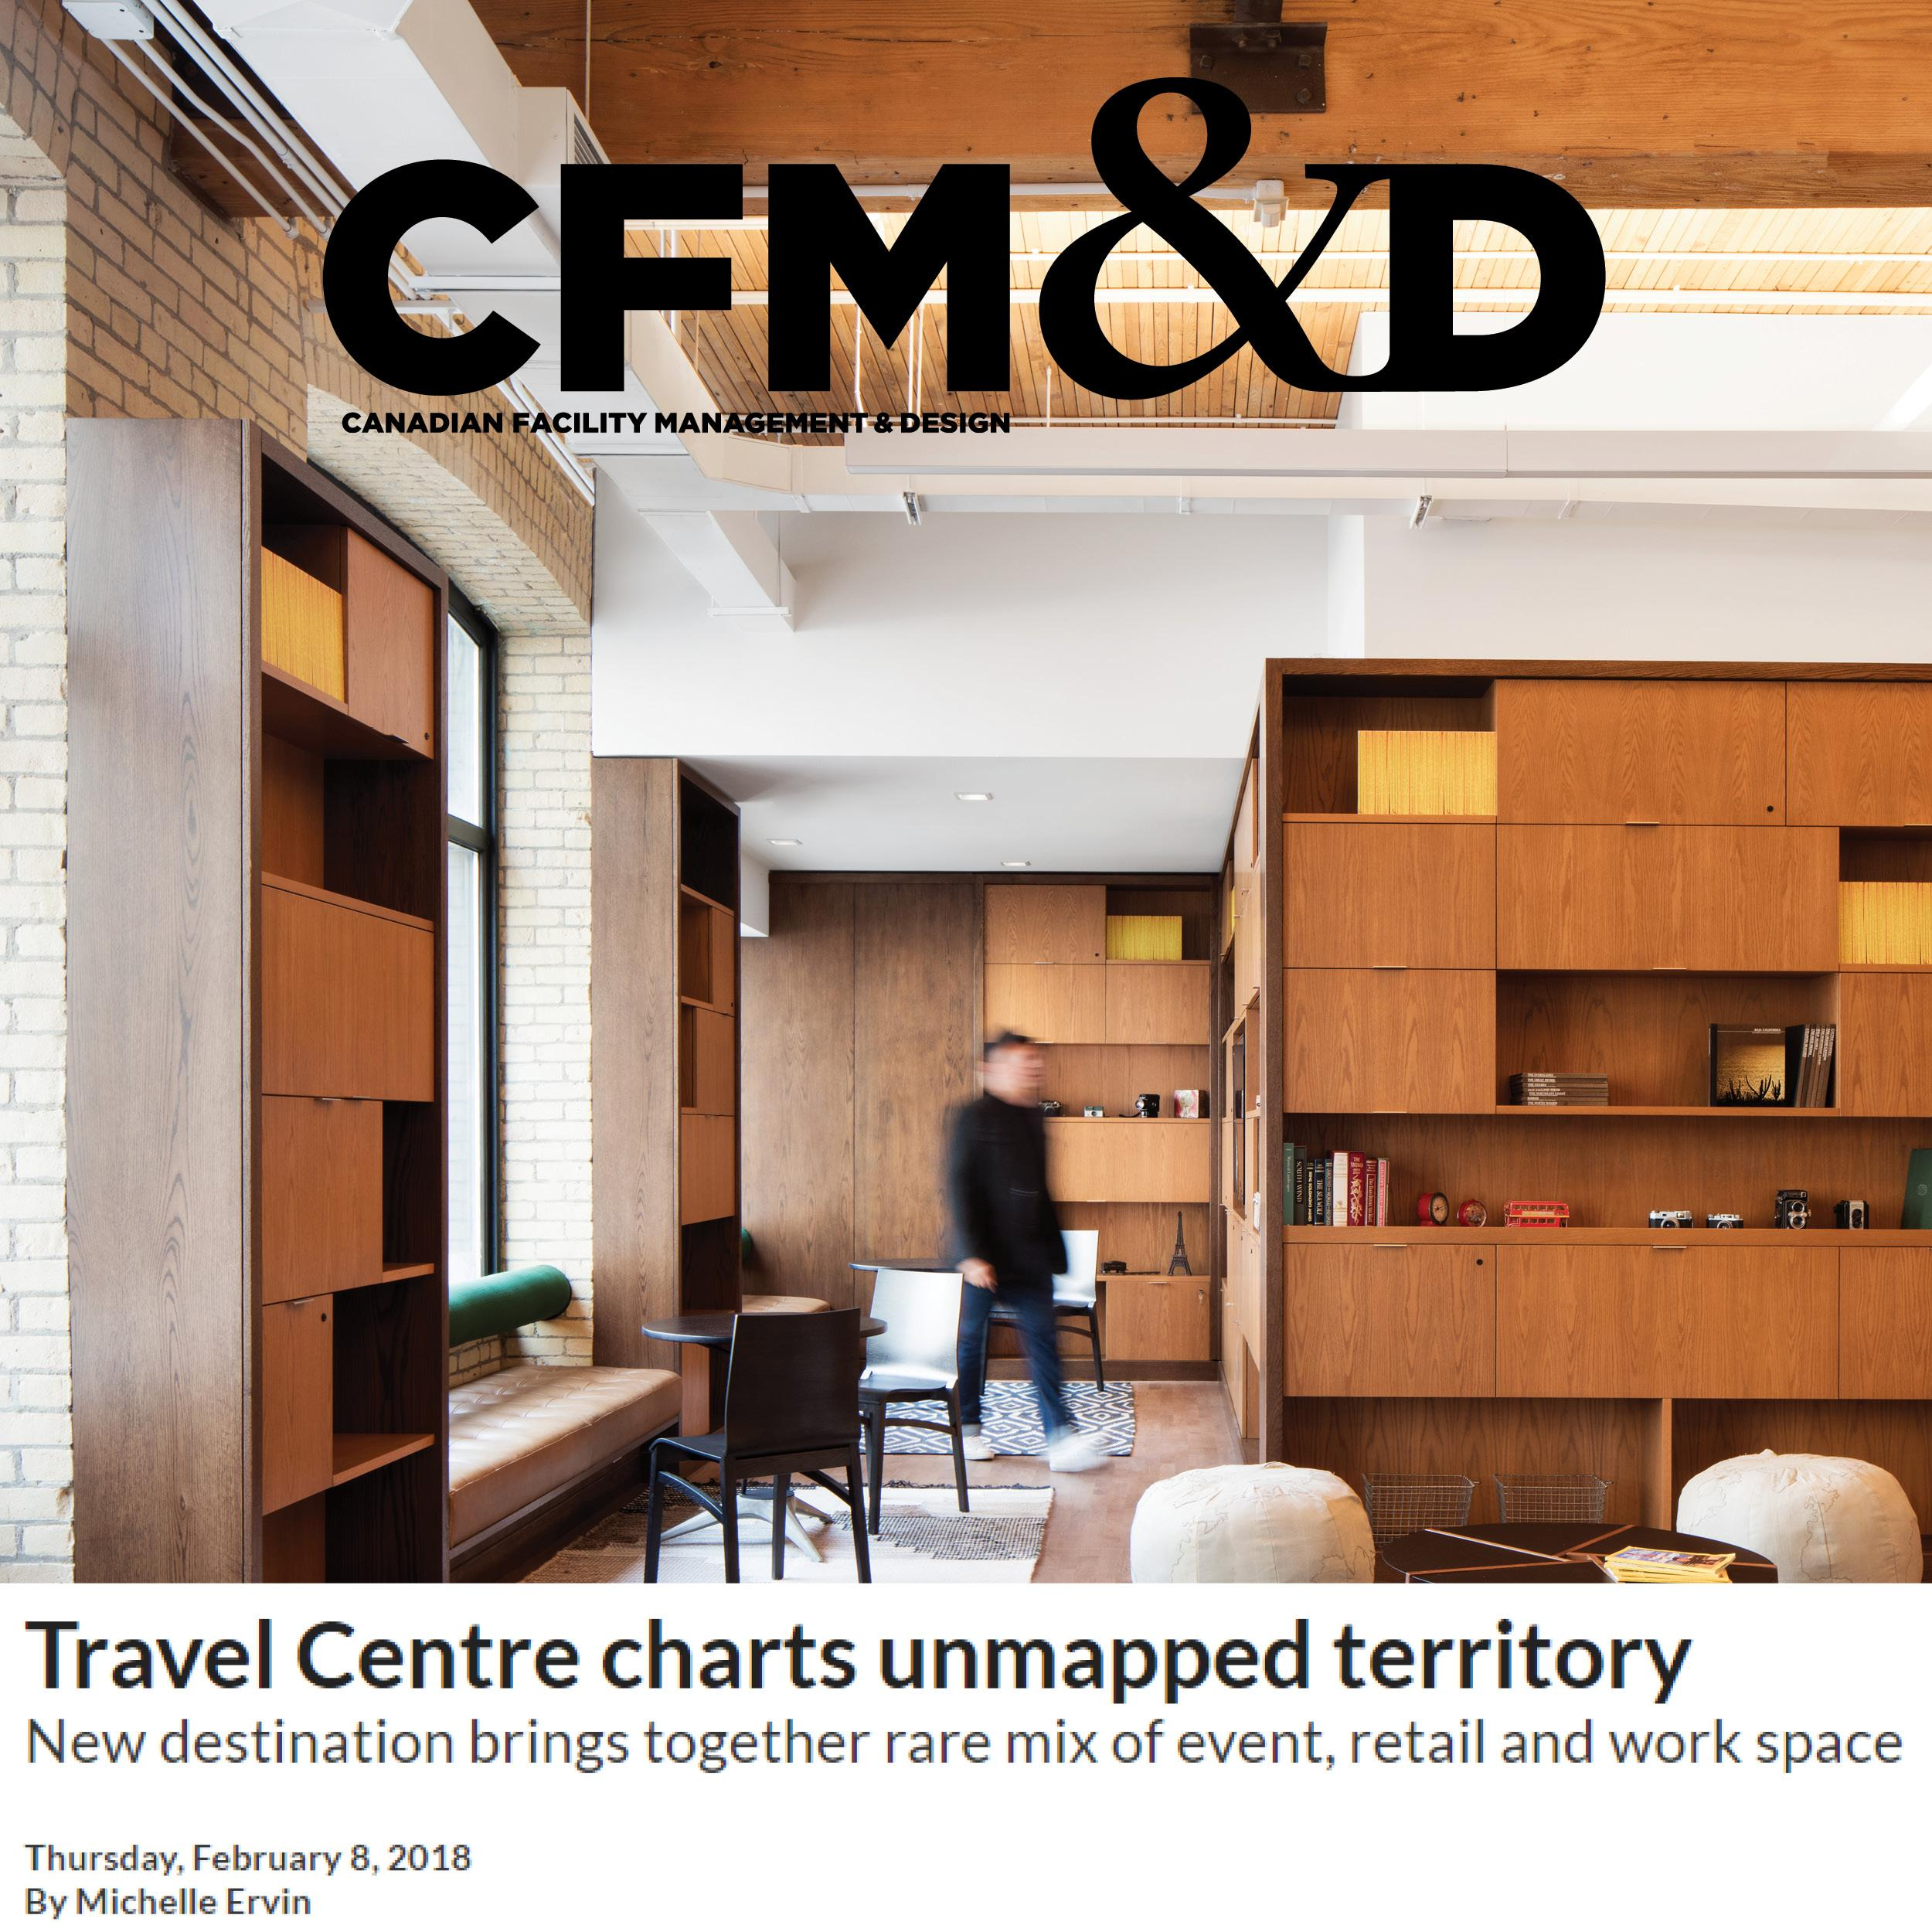 thumbnail showing CFM&D logo superimposed over a photo of the Travel Centre interiors